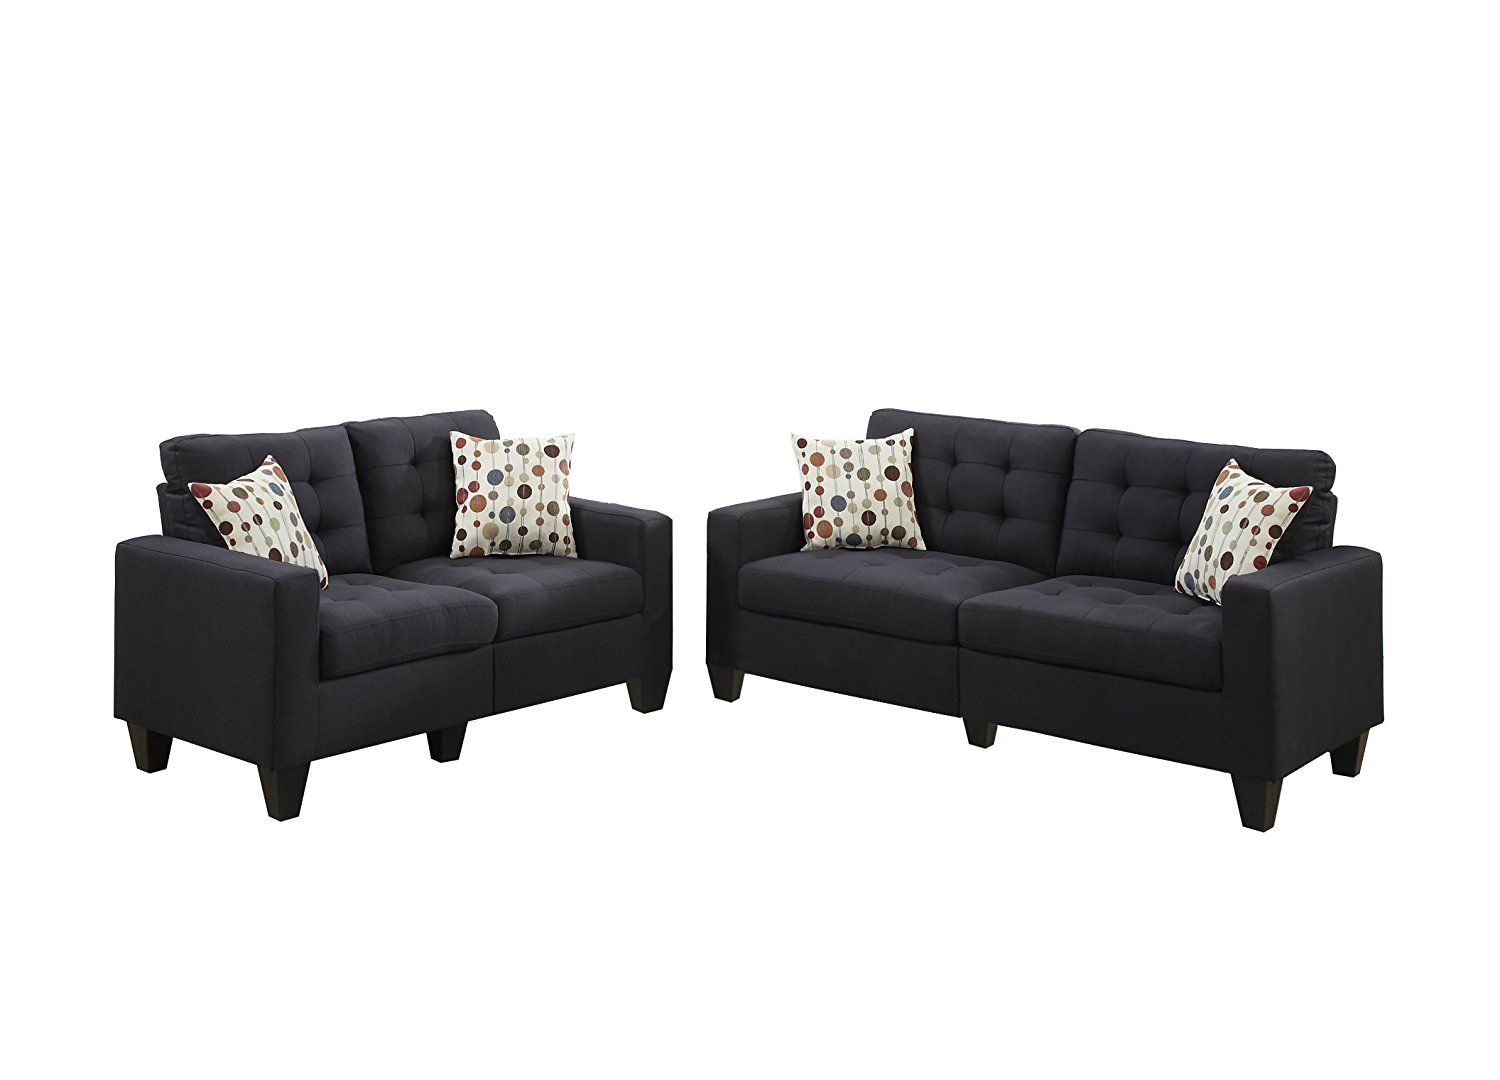 Nice Sofa And Loveseat Sets Under 500 Top Living Room Sets pertaining to dimensions 1500 X 1080